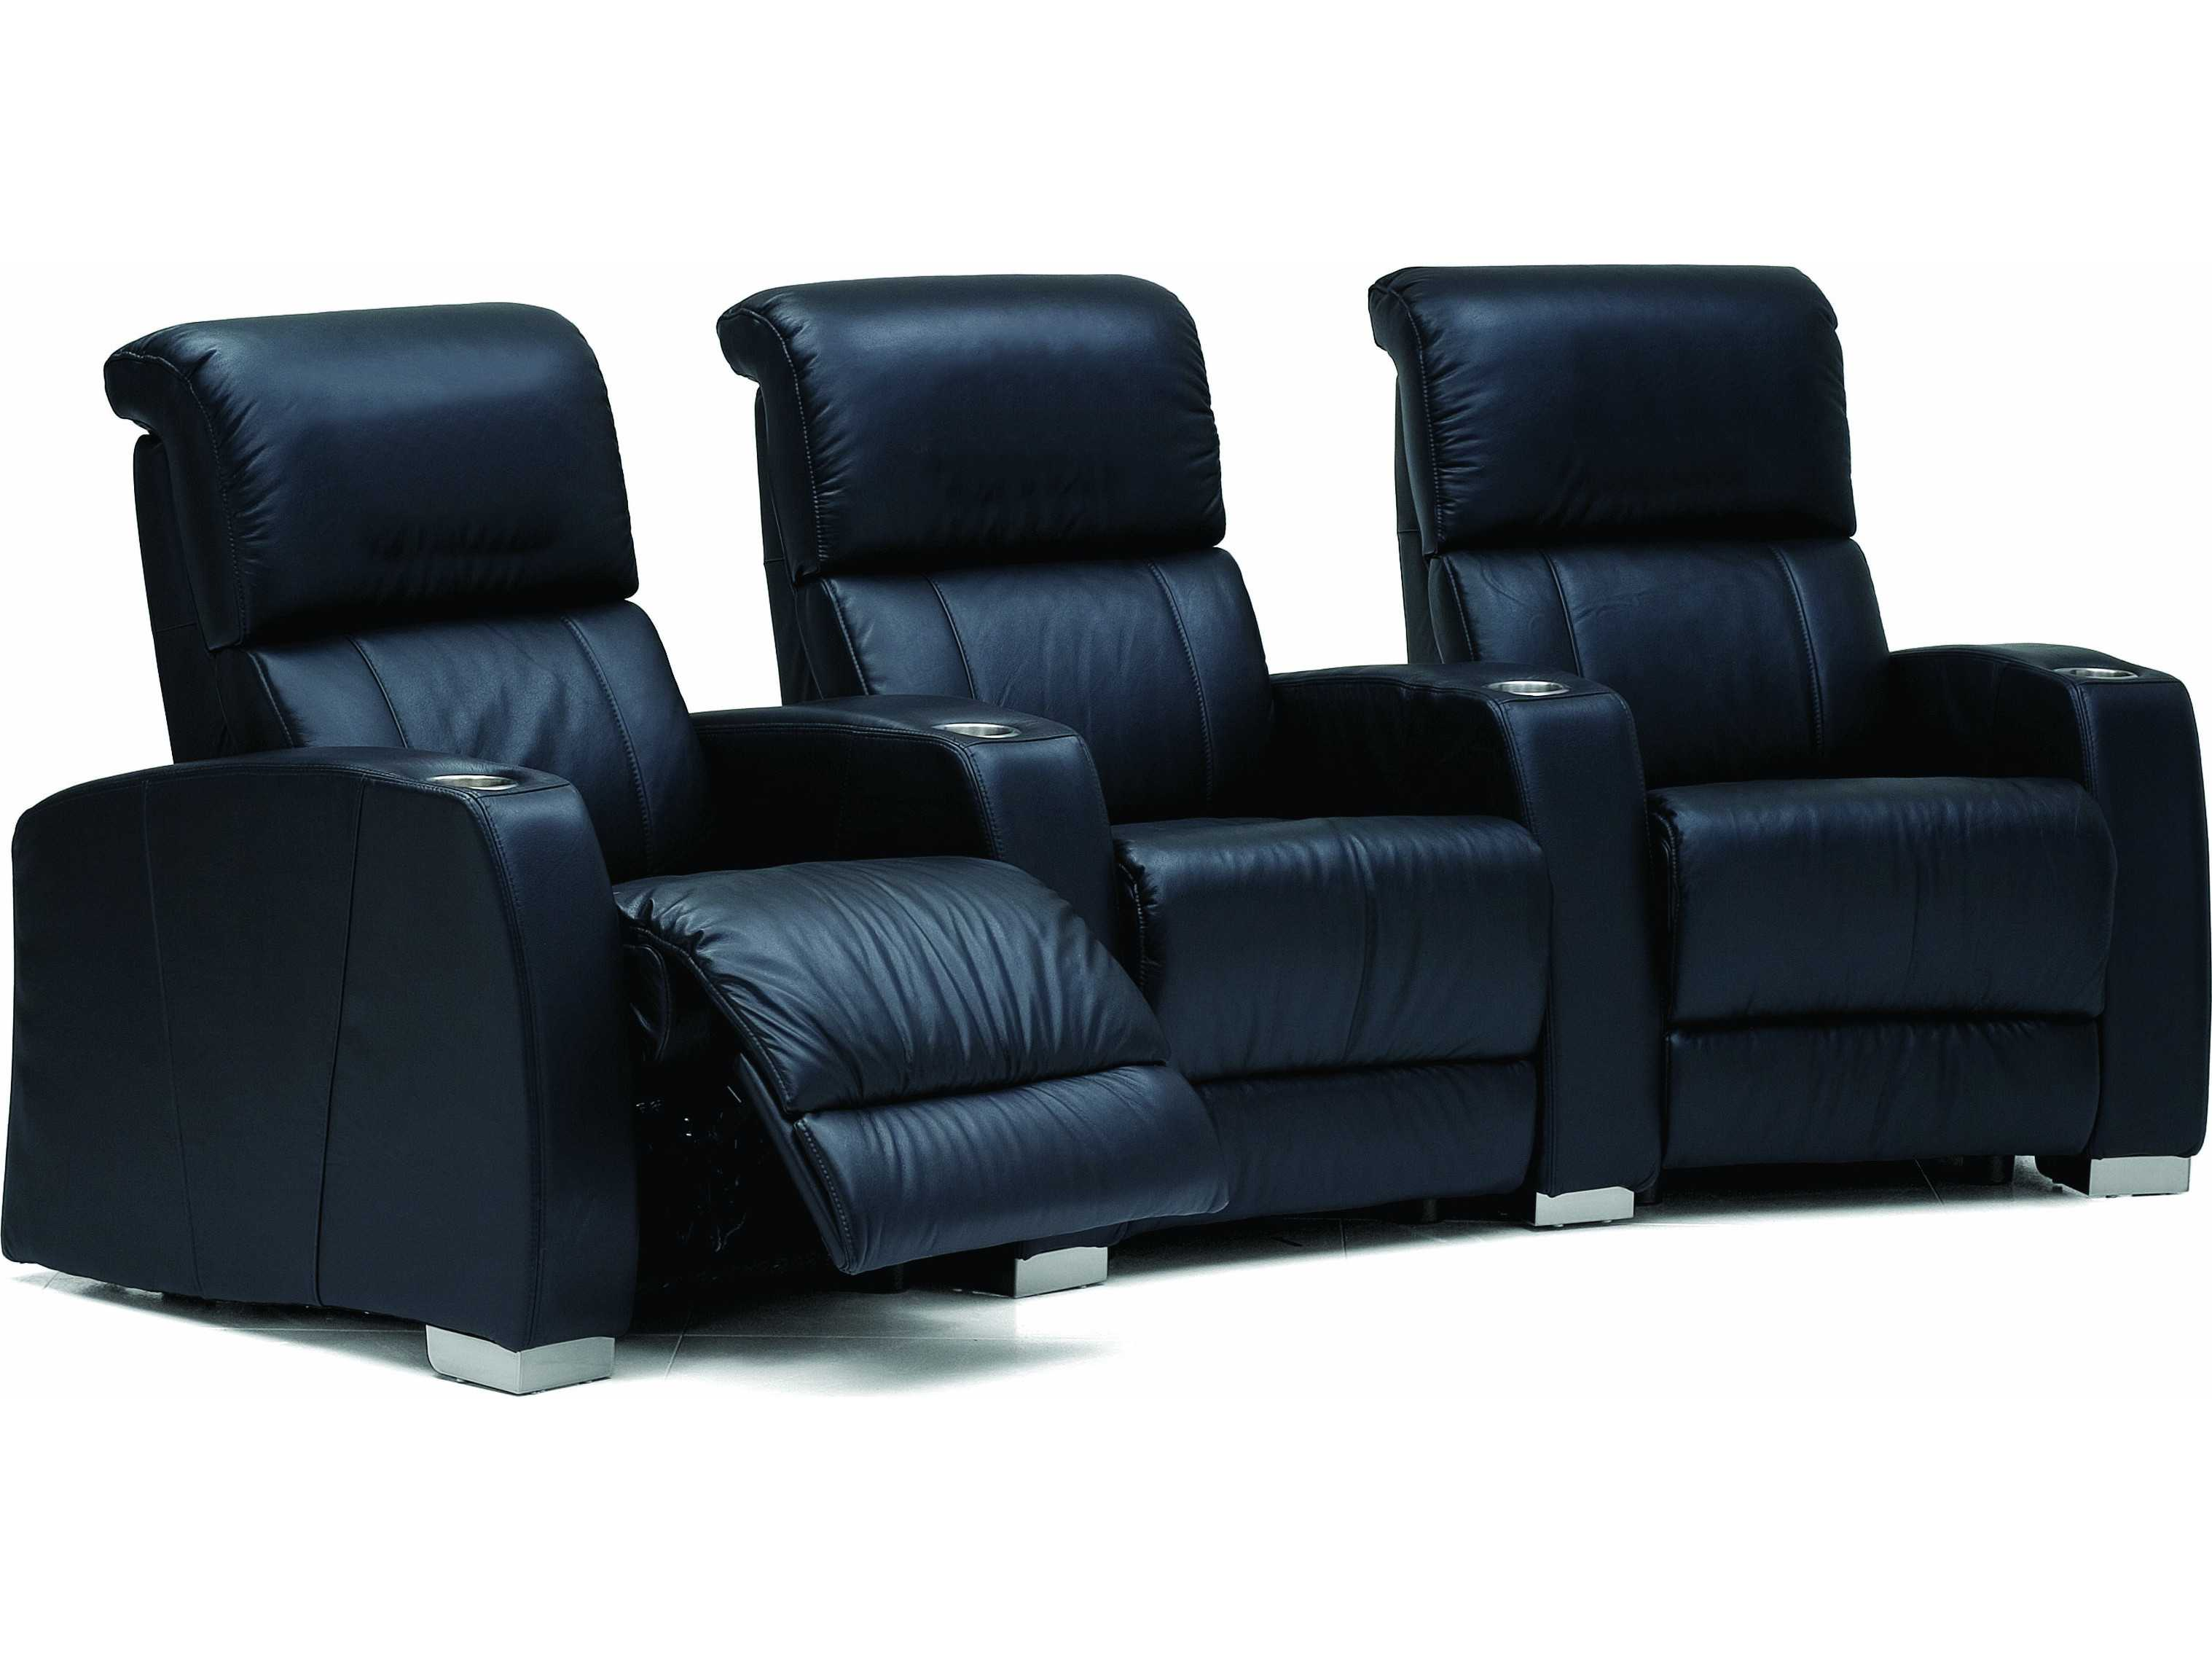 theater chair covers coleman deck with table uk palliser hifi hts powered reclining home sectional